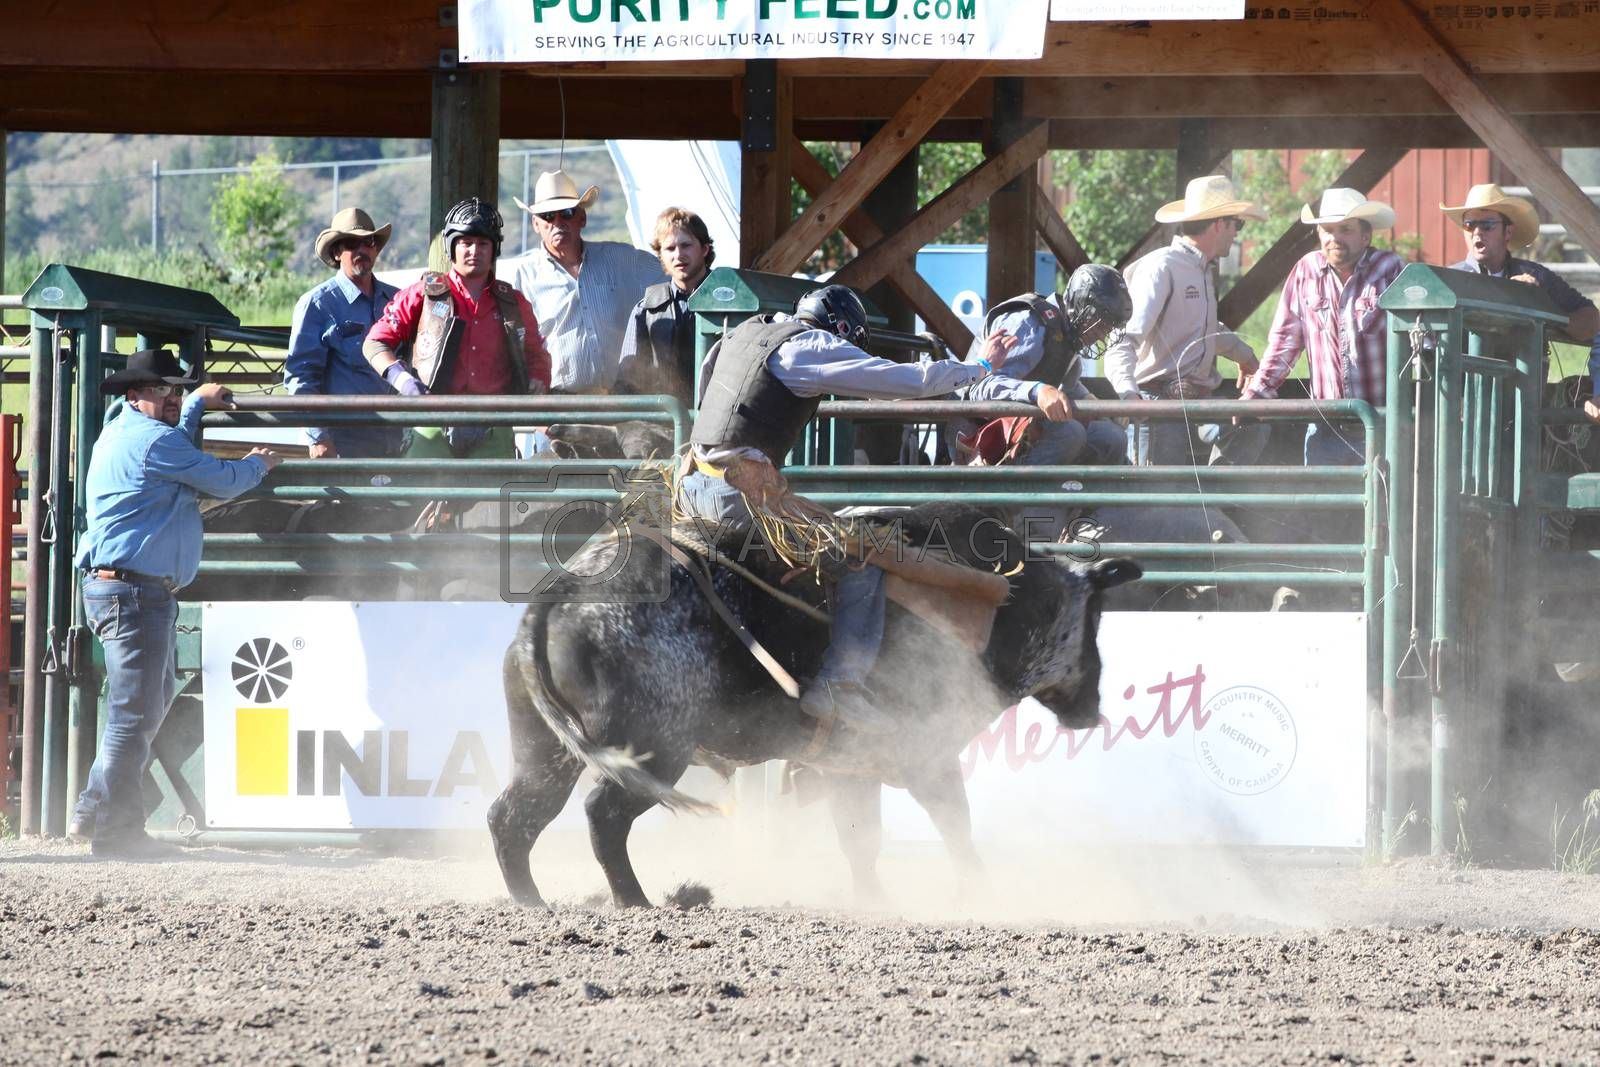 MERRITT; B.C. CANADA - May 30; 2015: Bull rider riding in the first round of The 3rd Annual Ty Pozzobon Invitational PBR Event.